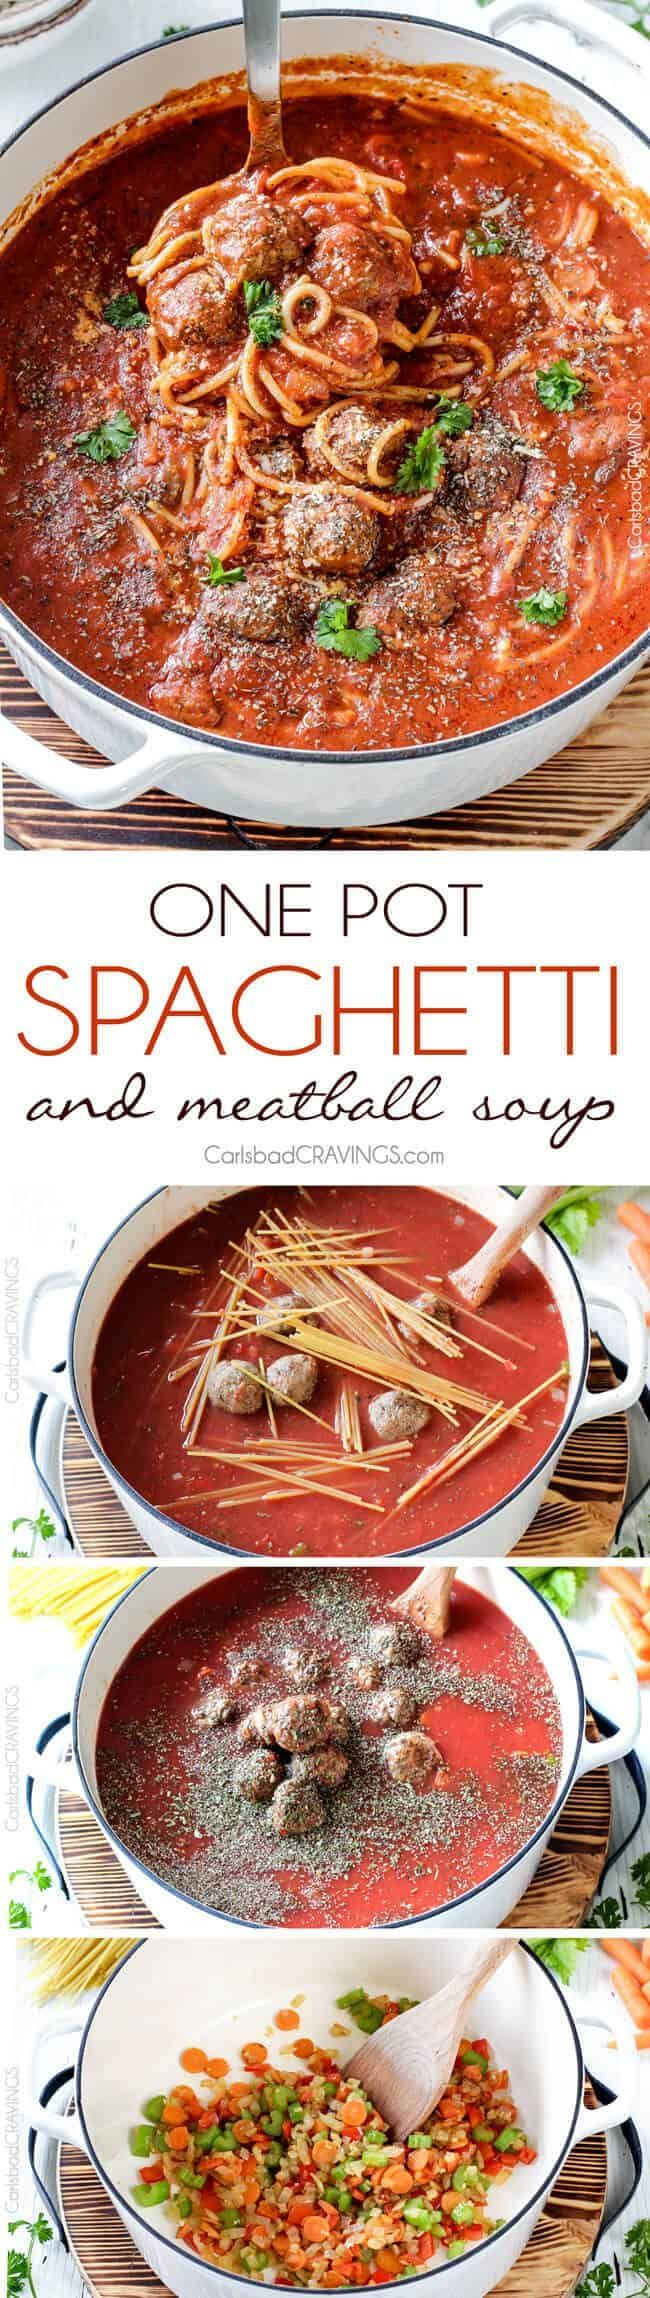 POT Italian Meatball Soup loaded with juicy meatballs in a savory tomato broth infused with Parmesan and herbs. This Italian Soup is a nod to your favorite spaghetti and meatballs but is even more slurp-worthy delicious!  You can use shortcut store-bought meatballs or these incredibly moist Parmesan meatballs for a